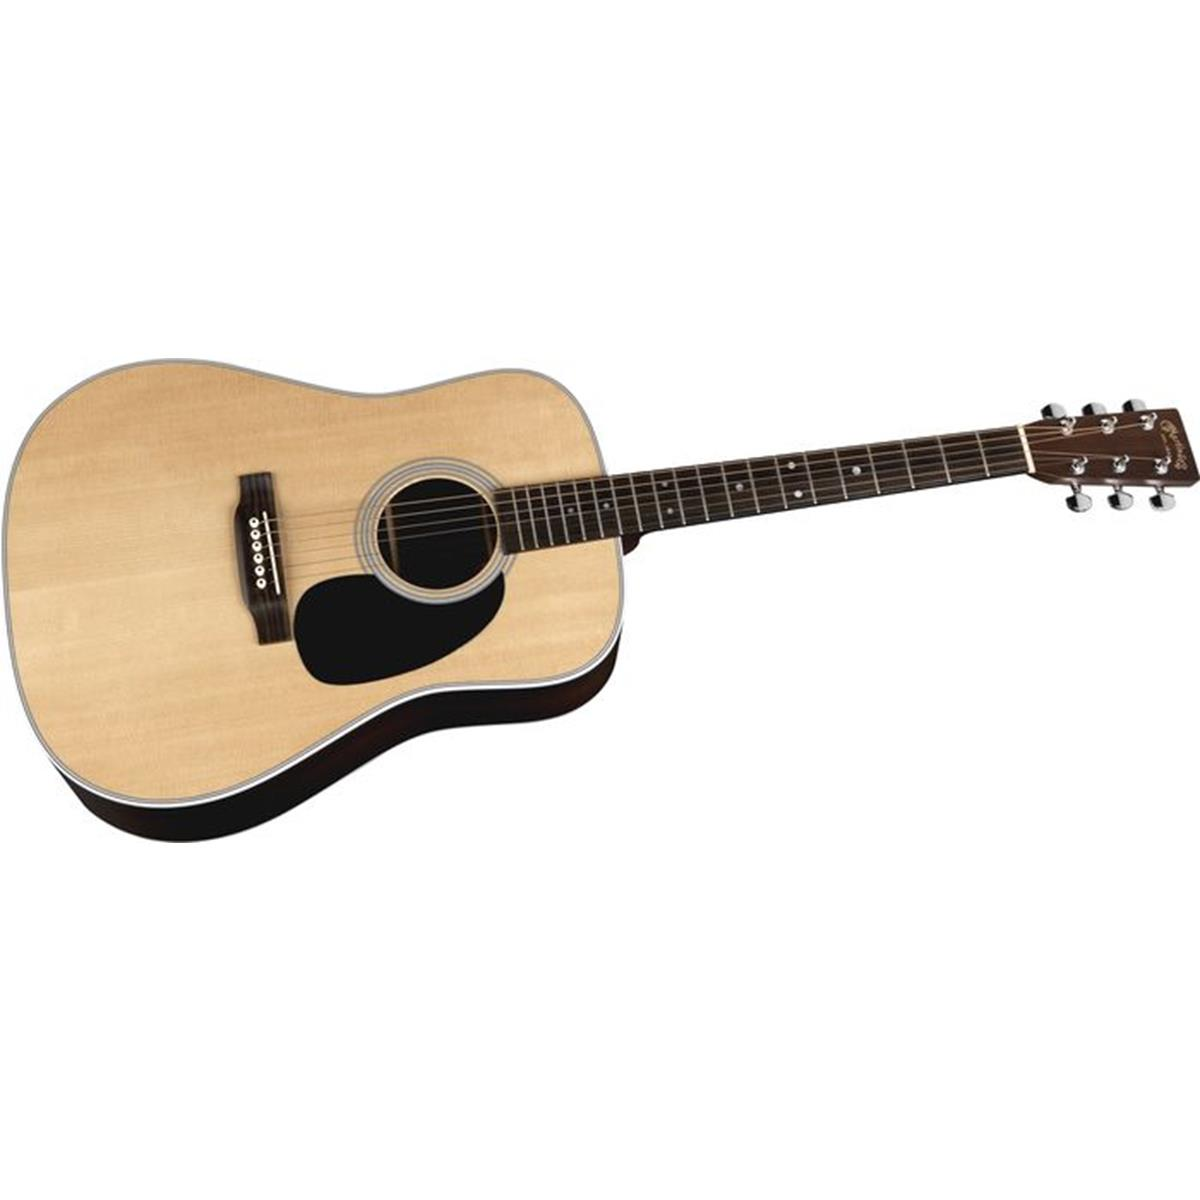 MARTIN & CO. D 28 CHITARRA ACUSTICA DREADNOUGHT